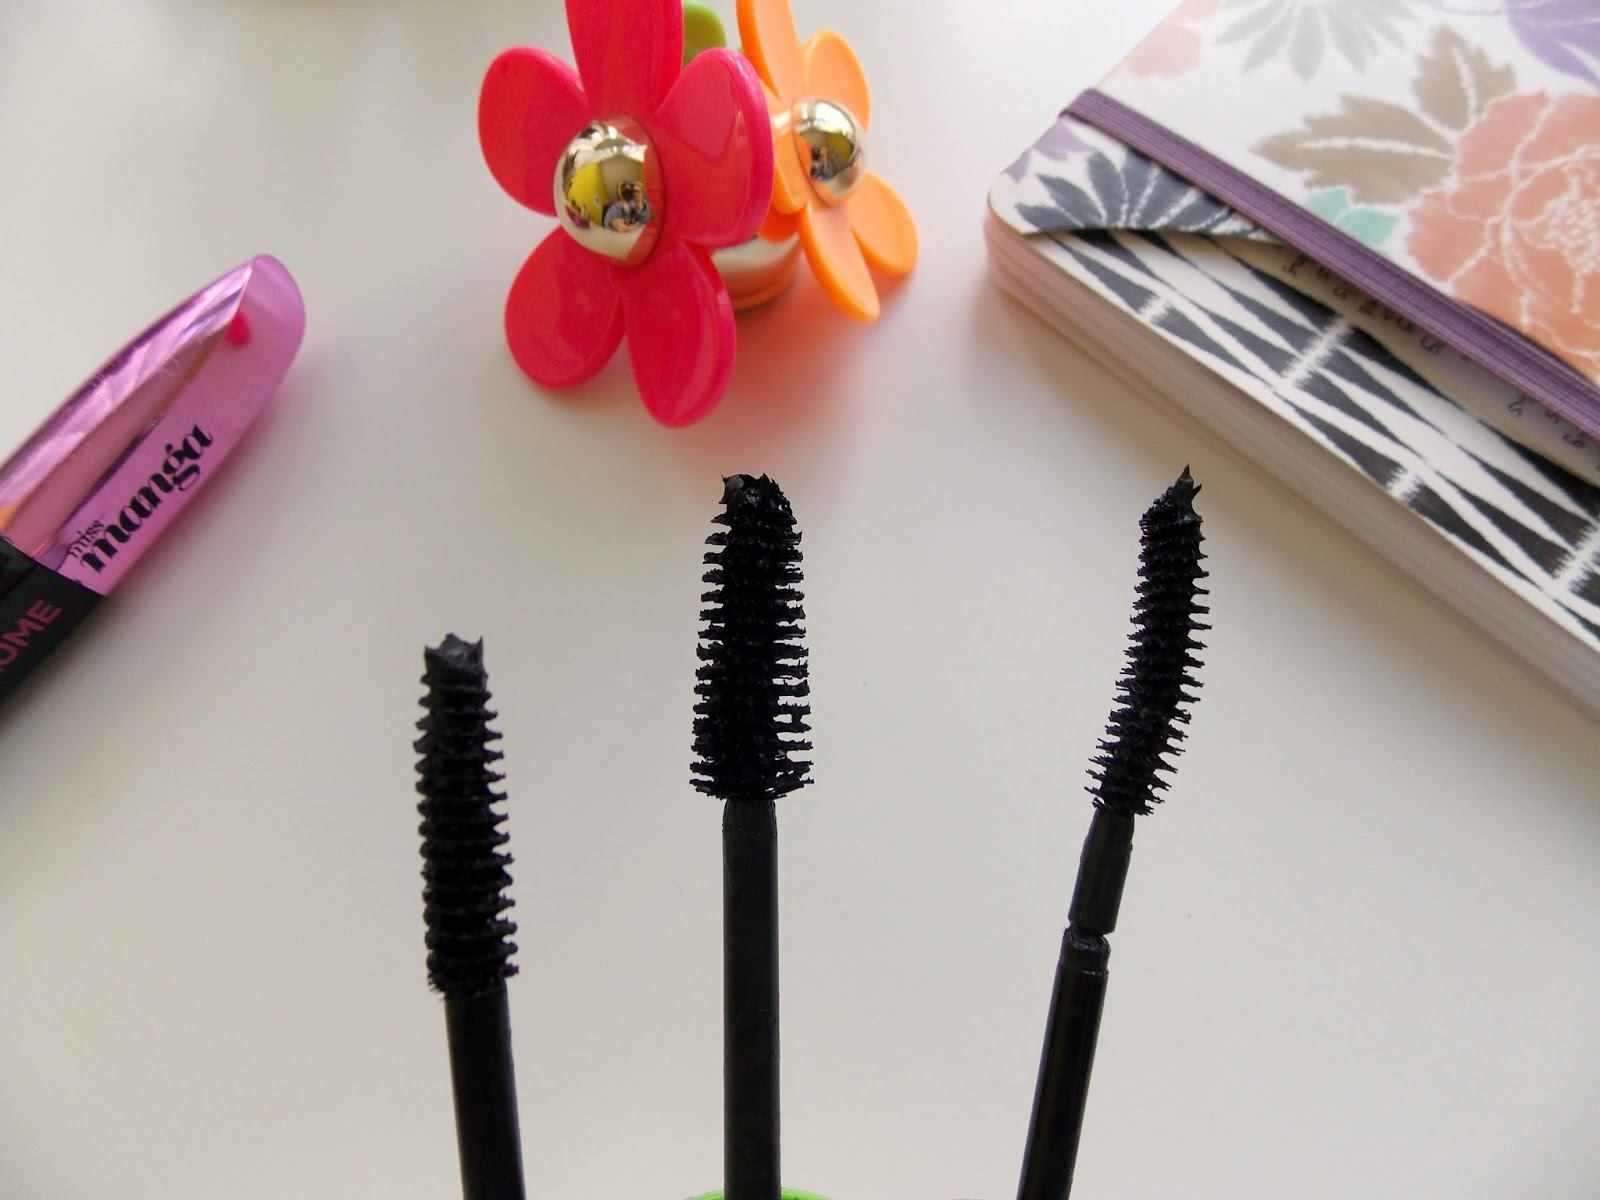 Drugstore/High street mascara edit, collection longer lash mascara, rimmel scandal eyes mascara, maybelline the falsies mascara, photo, review, swatches